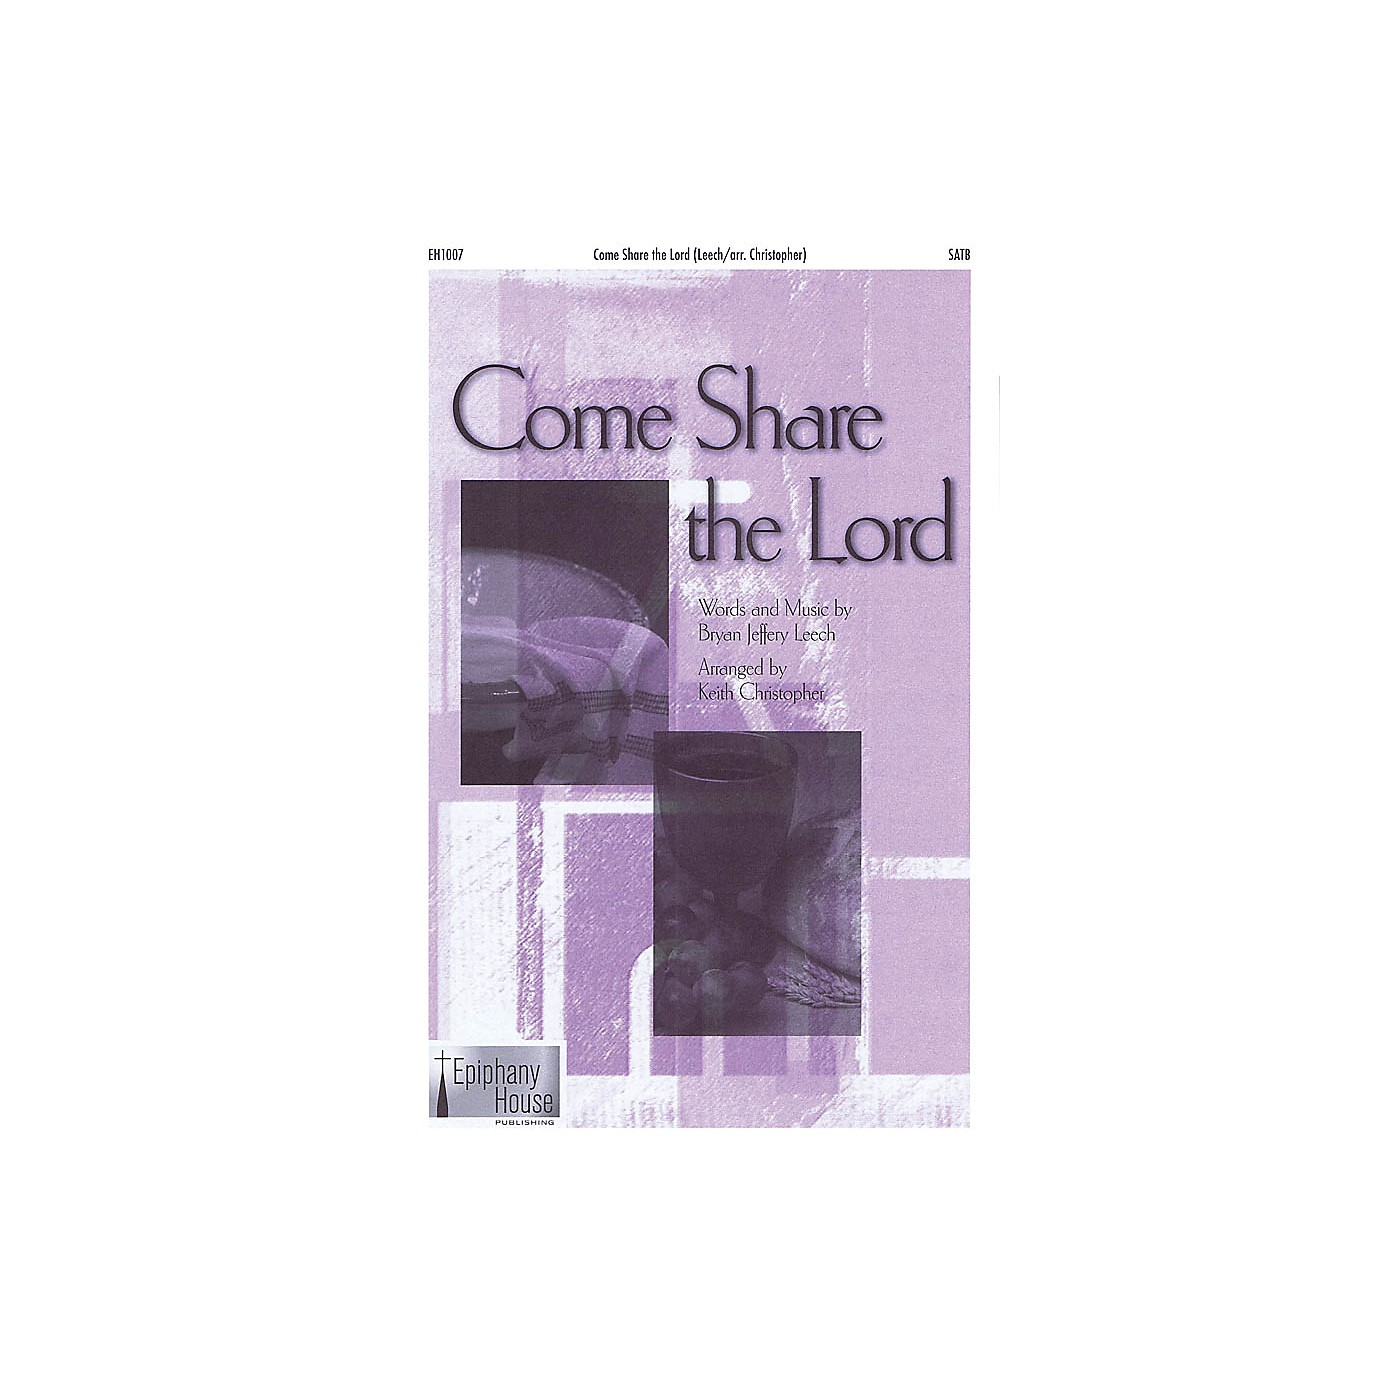 Epiphany House Publishing Come Share the Lord Score & Parts Arranged by Keith Christopher thumbnail